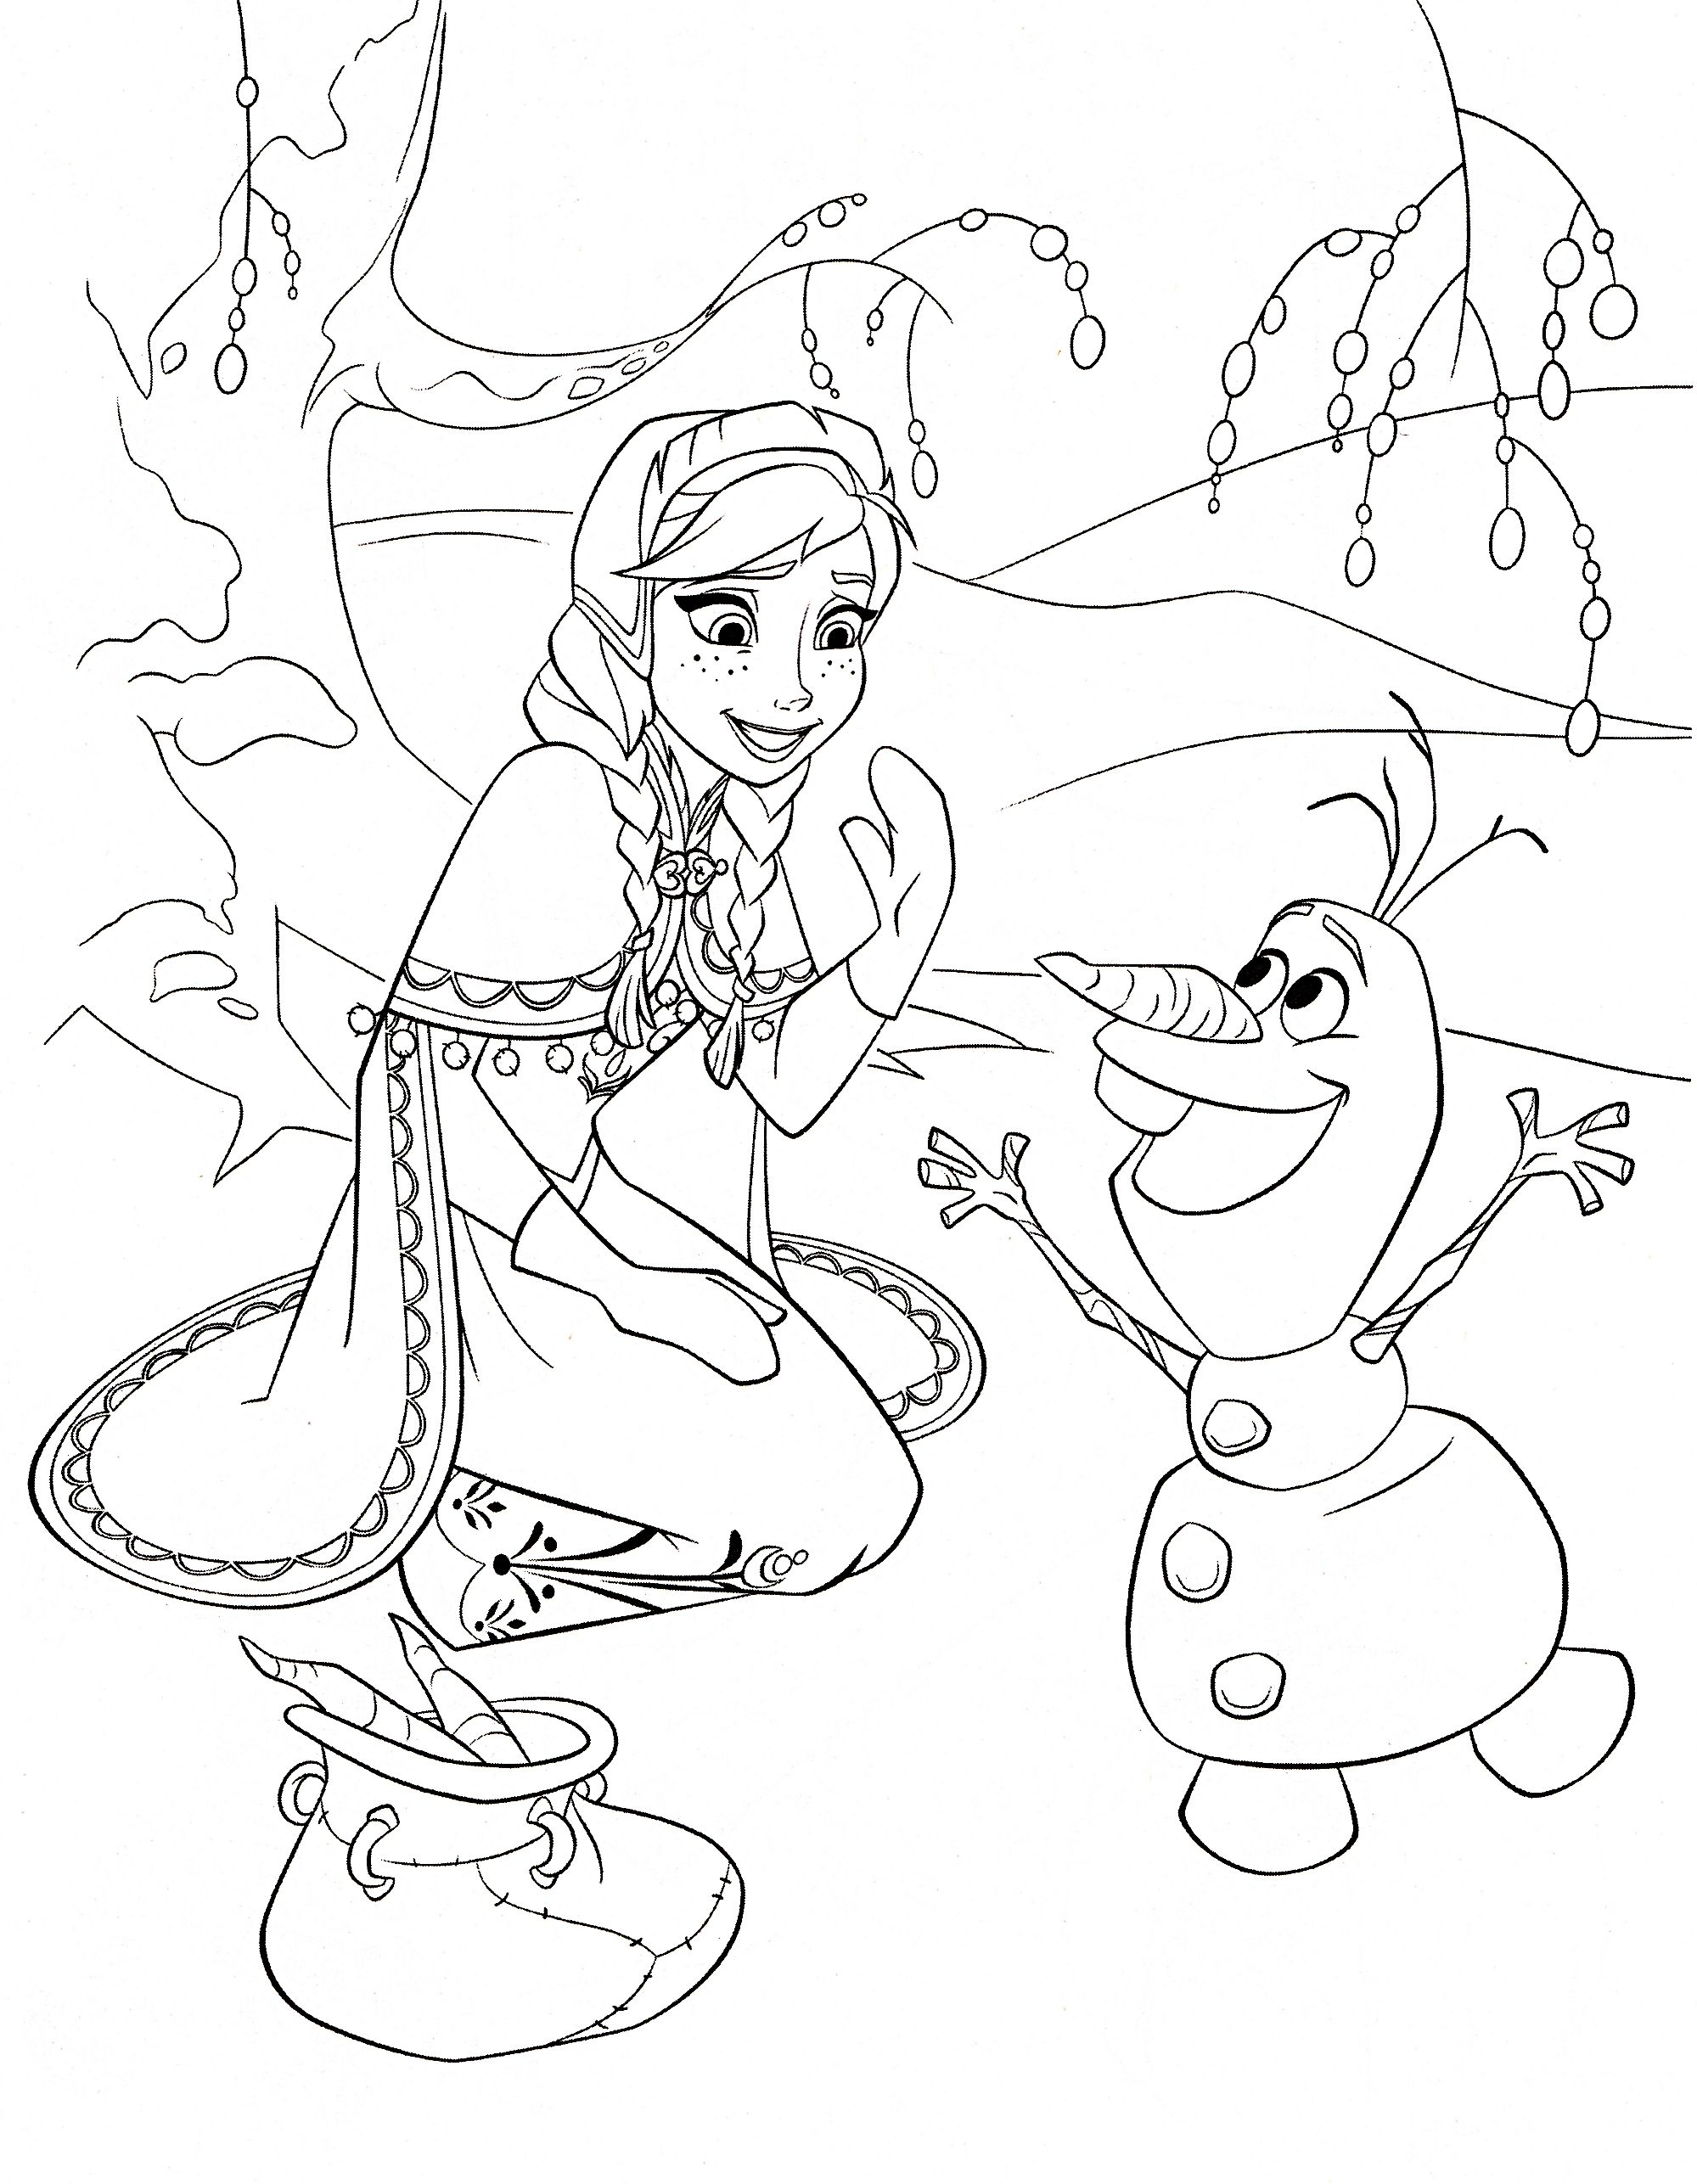 Free Frozen Printable Coloring Activity Pages Plus Free Computer Games Boyama Kitaplari Boyama Sayfalari Adult Coloring Pages